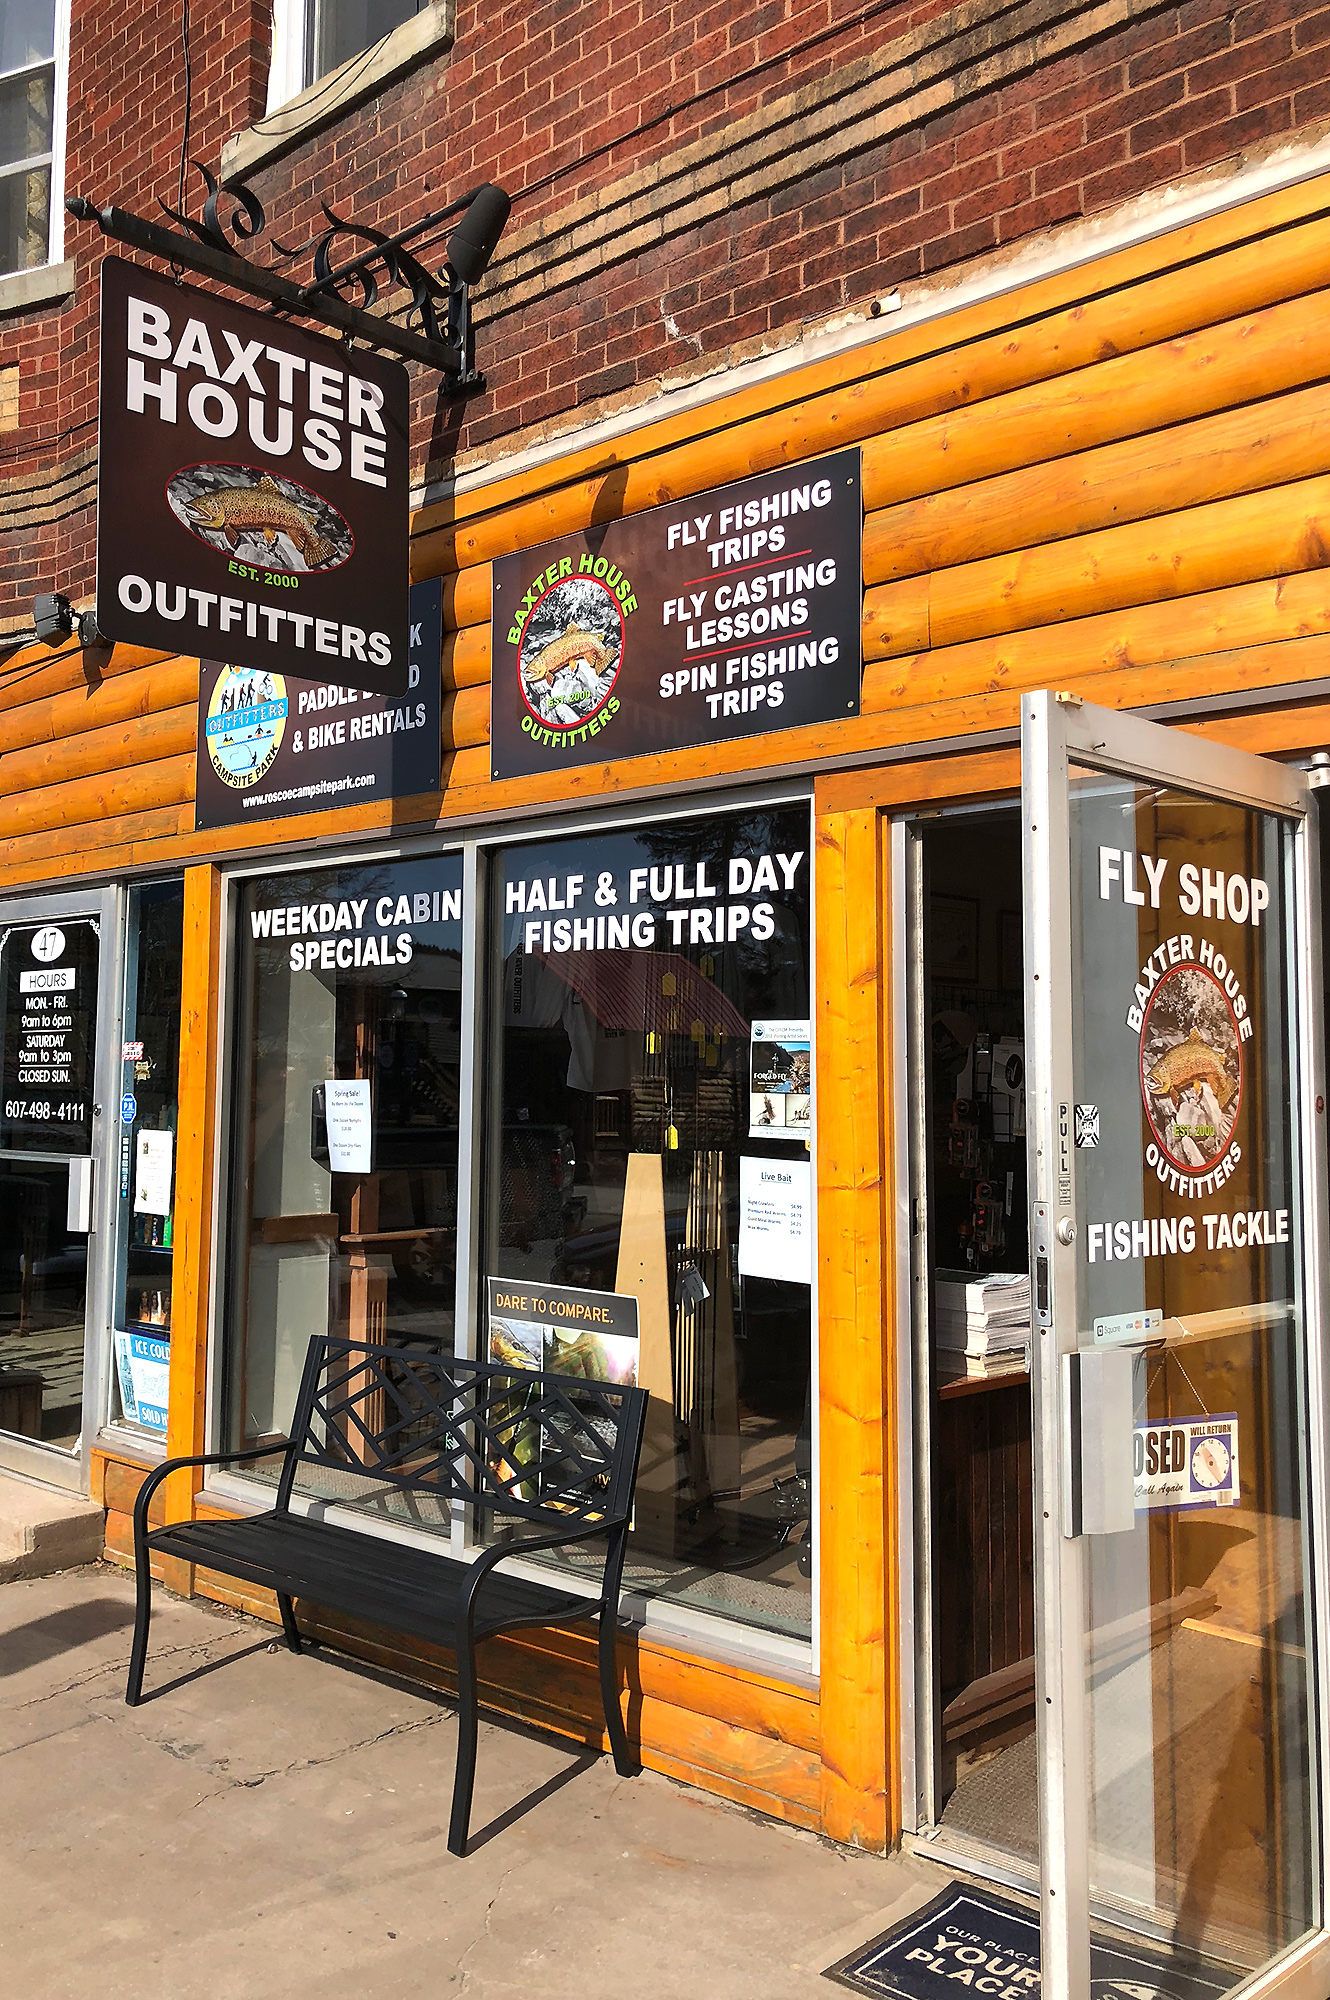 Baxter House Outfitters